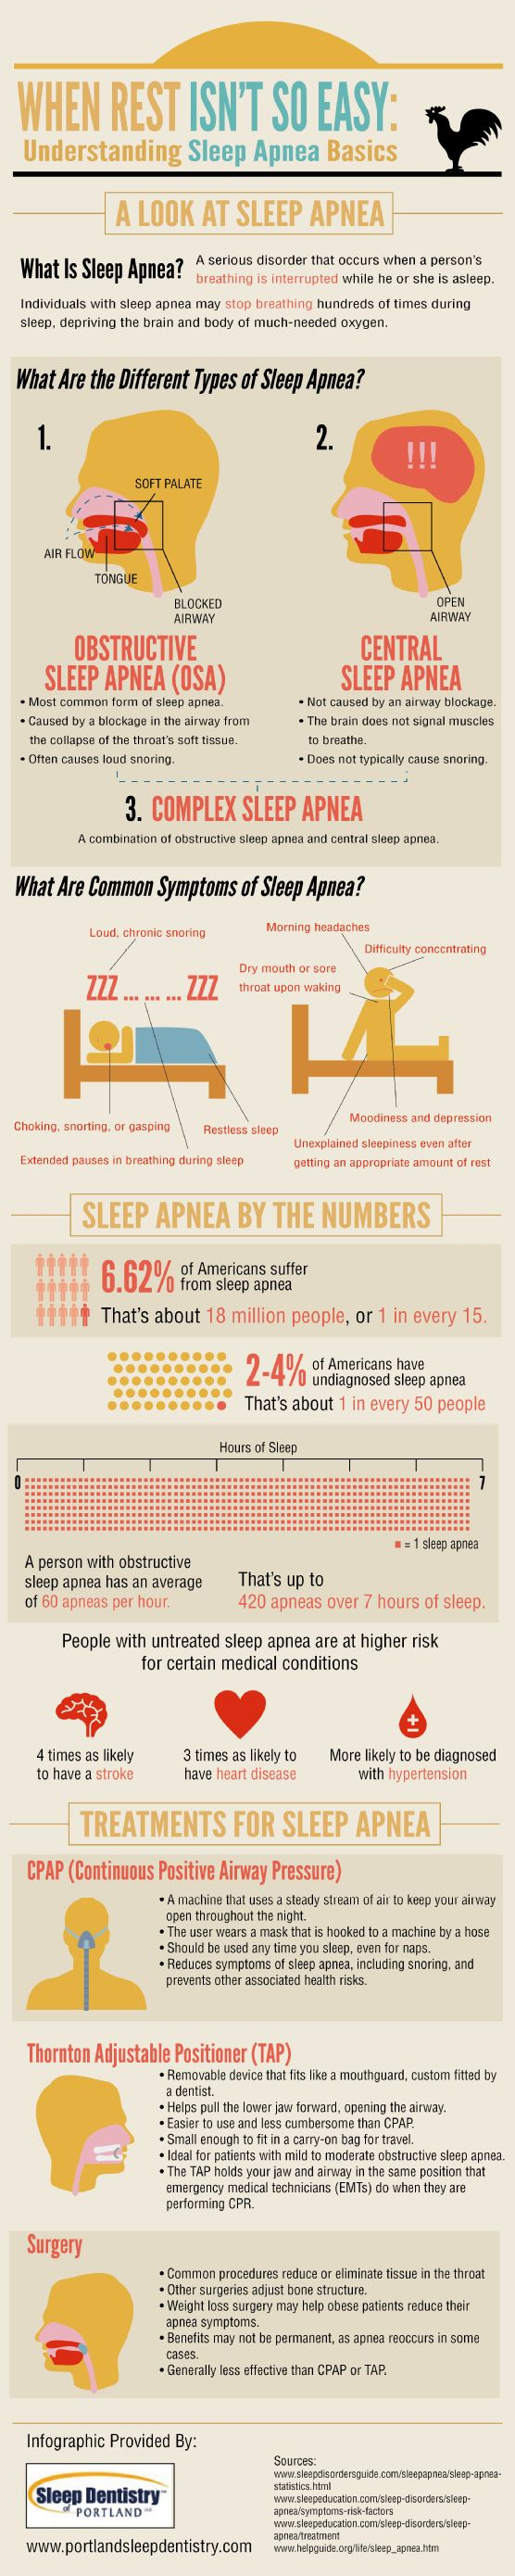 A Look at #Sleep #Apnea – Sleep Apnea Basics. #dentistry